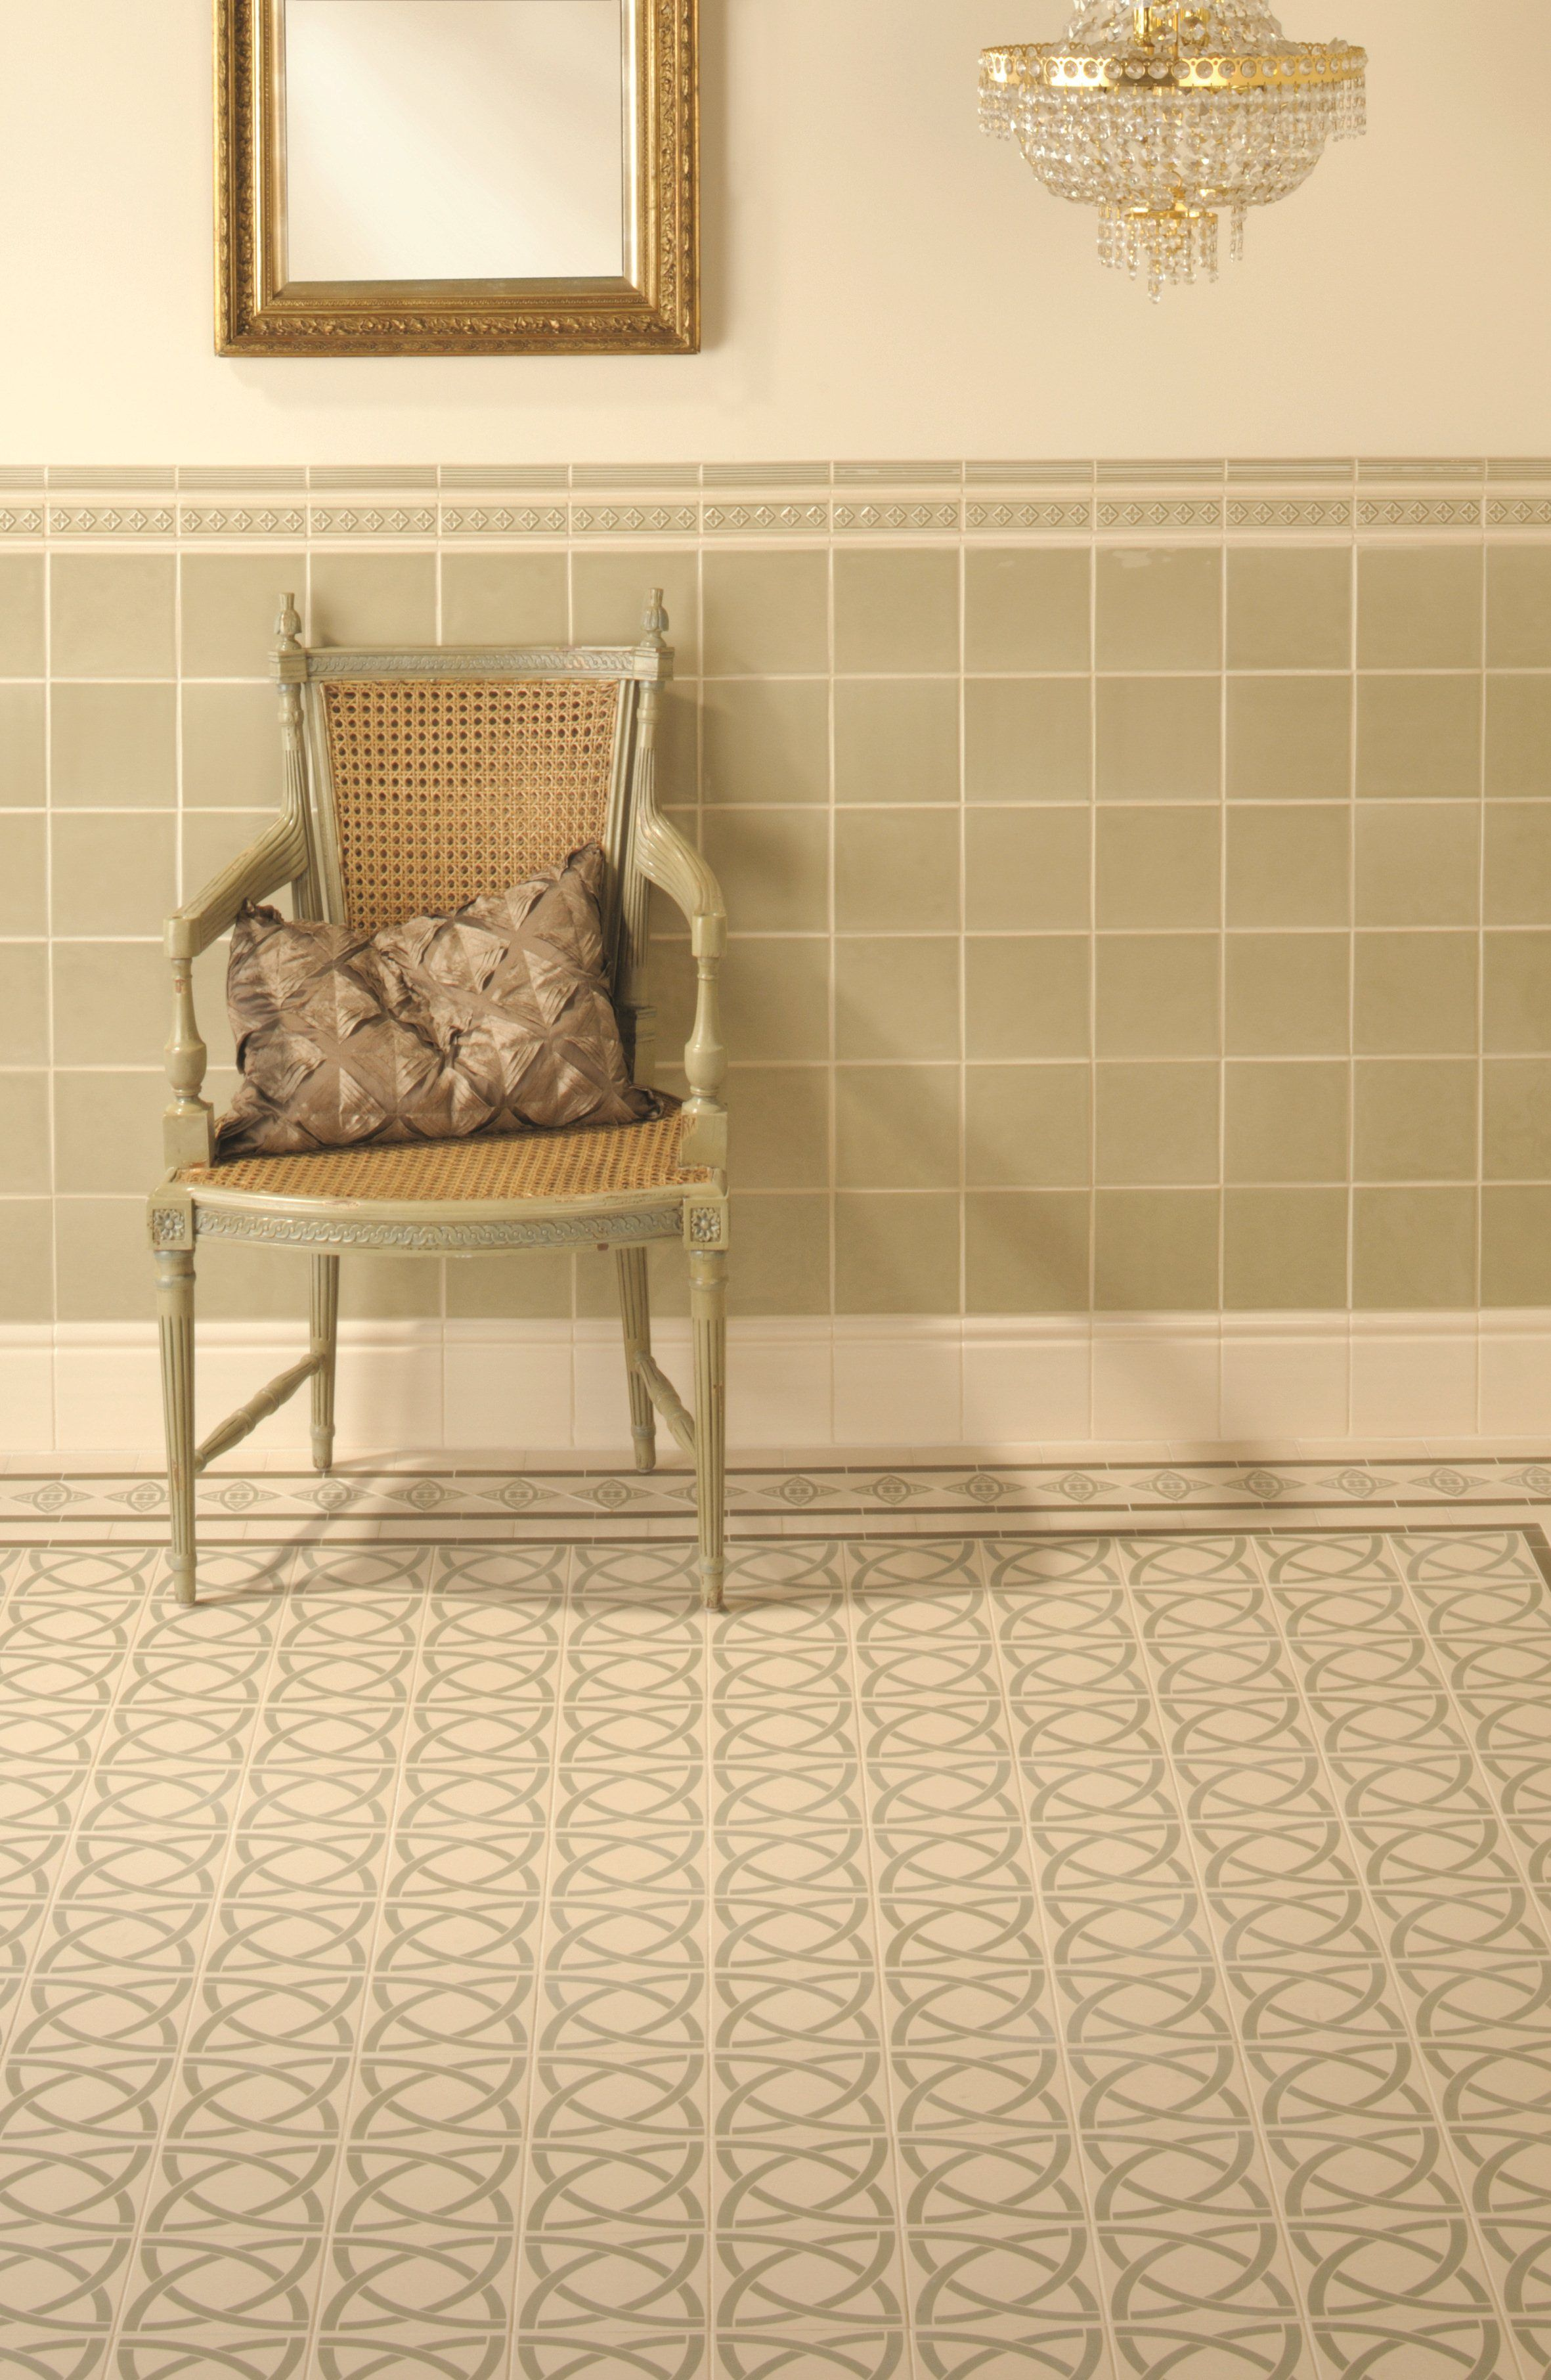 Victorian Floor Tiles - Dublin with a Galway border. Soft green ...